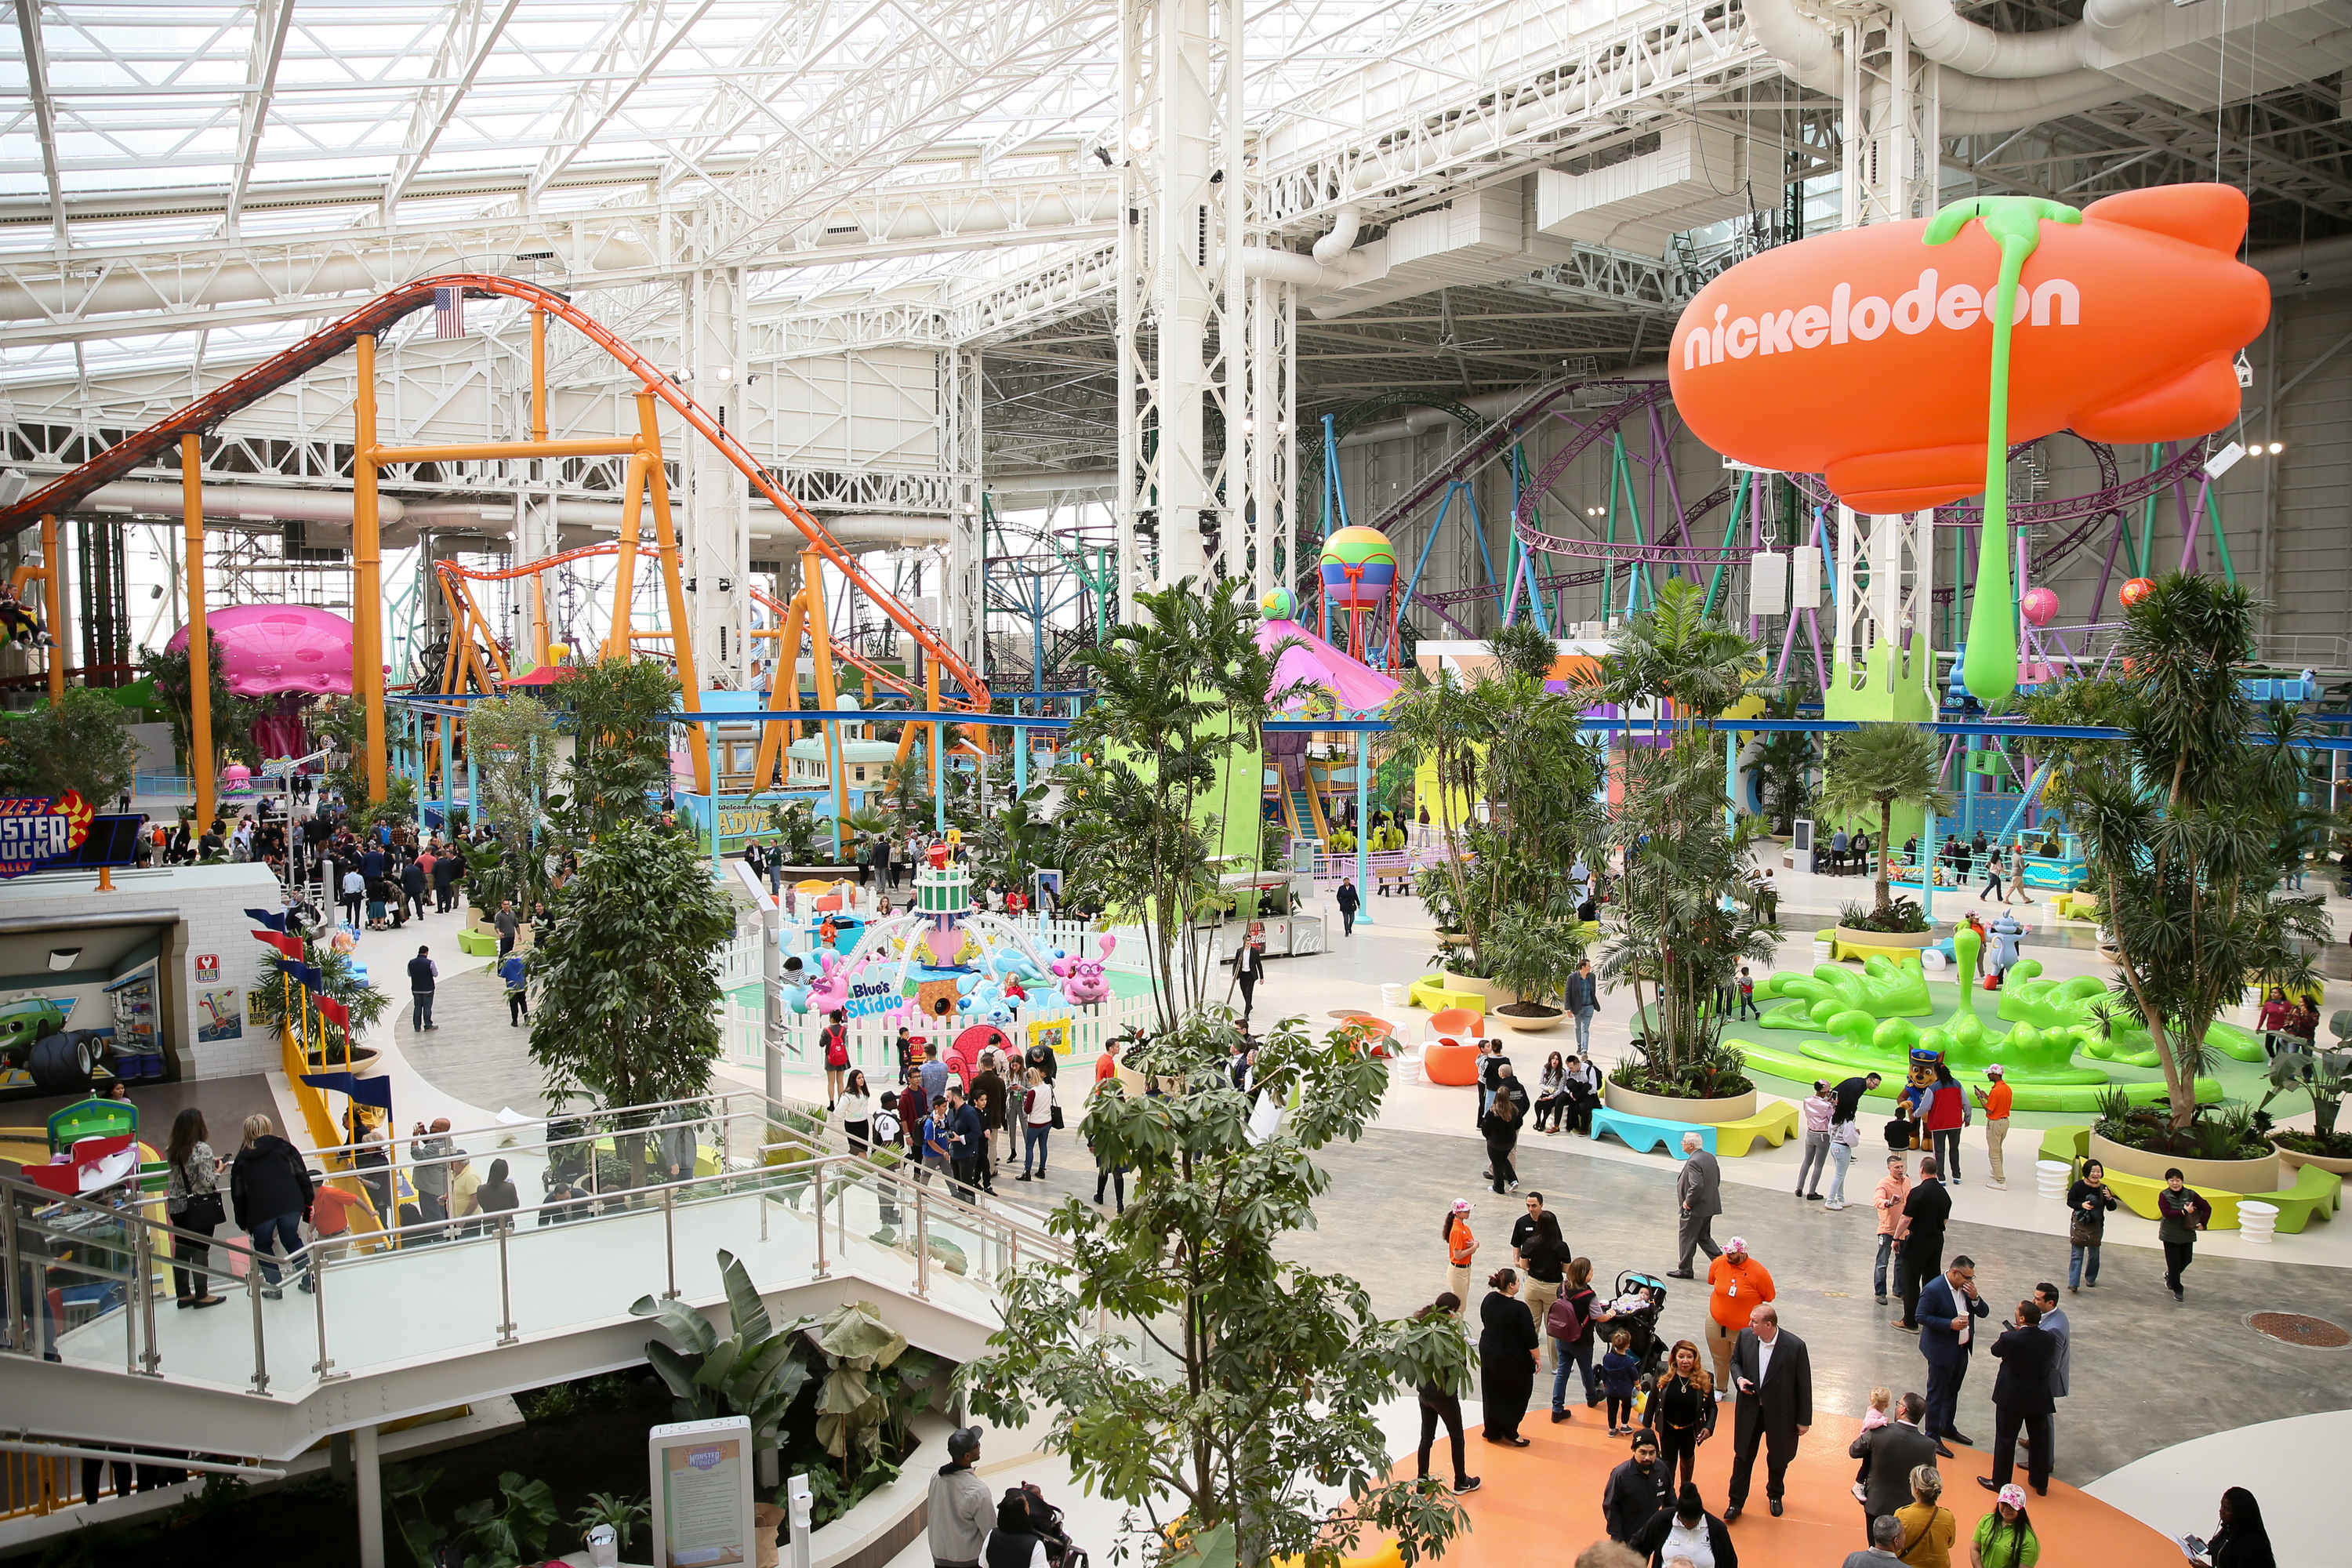 Nickelodeon Universe at American Dream: Opening Day